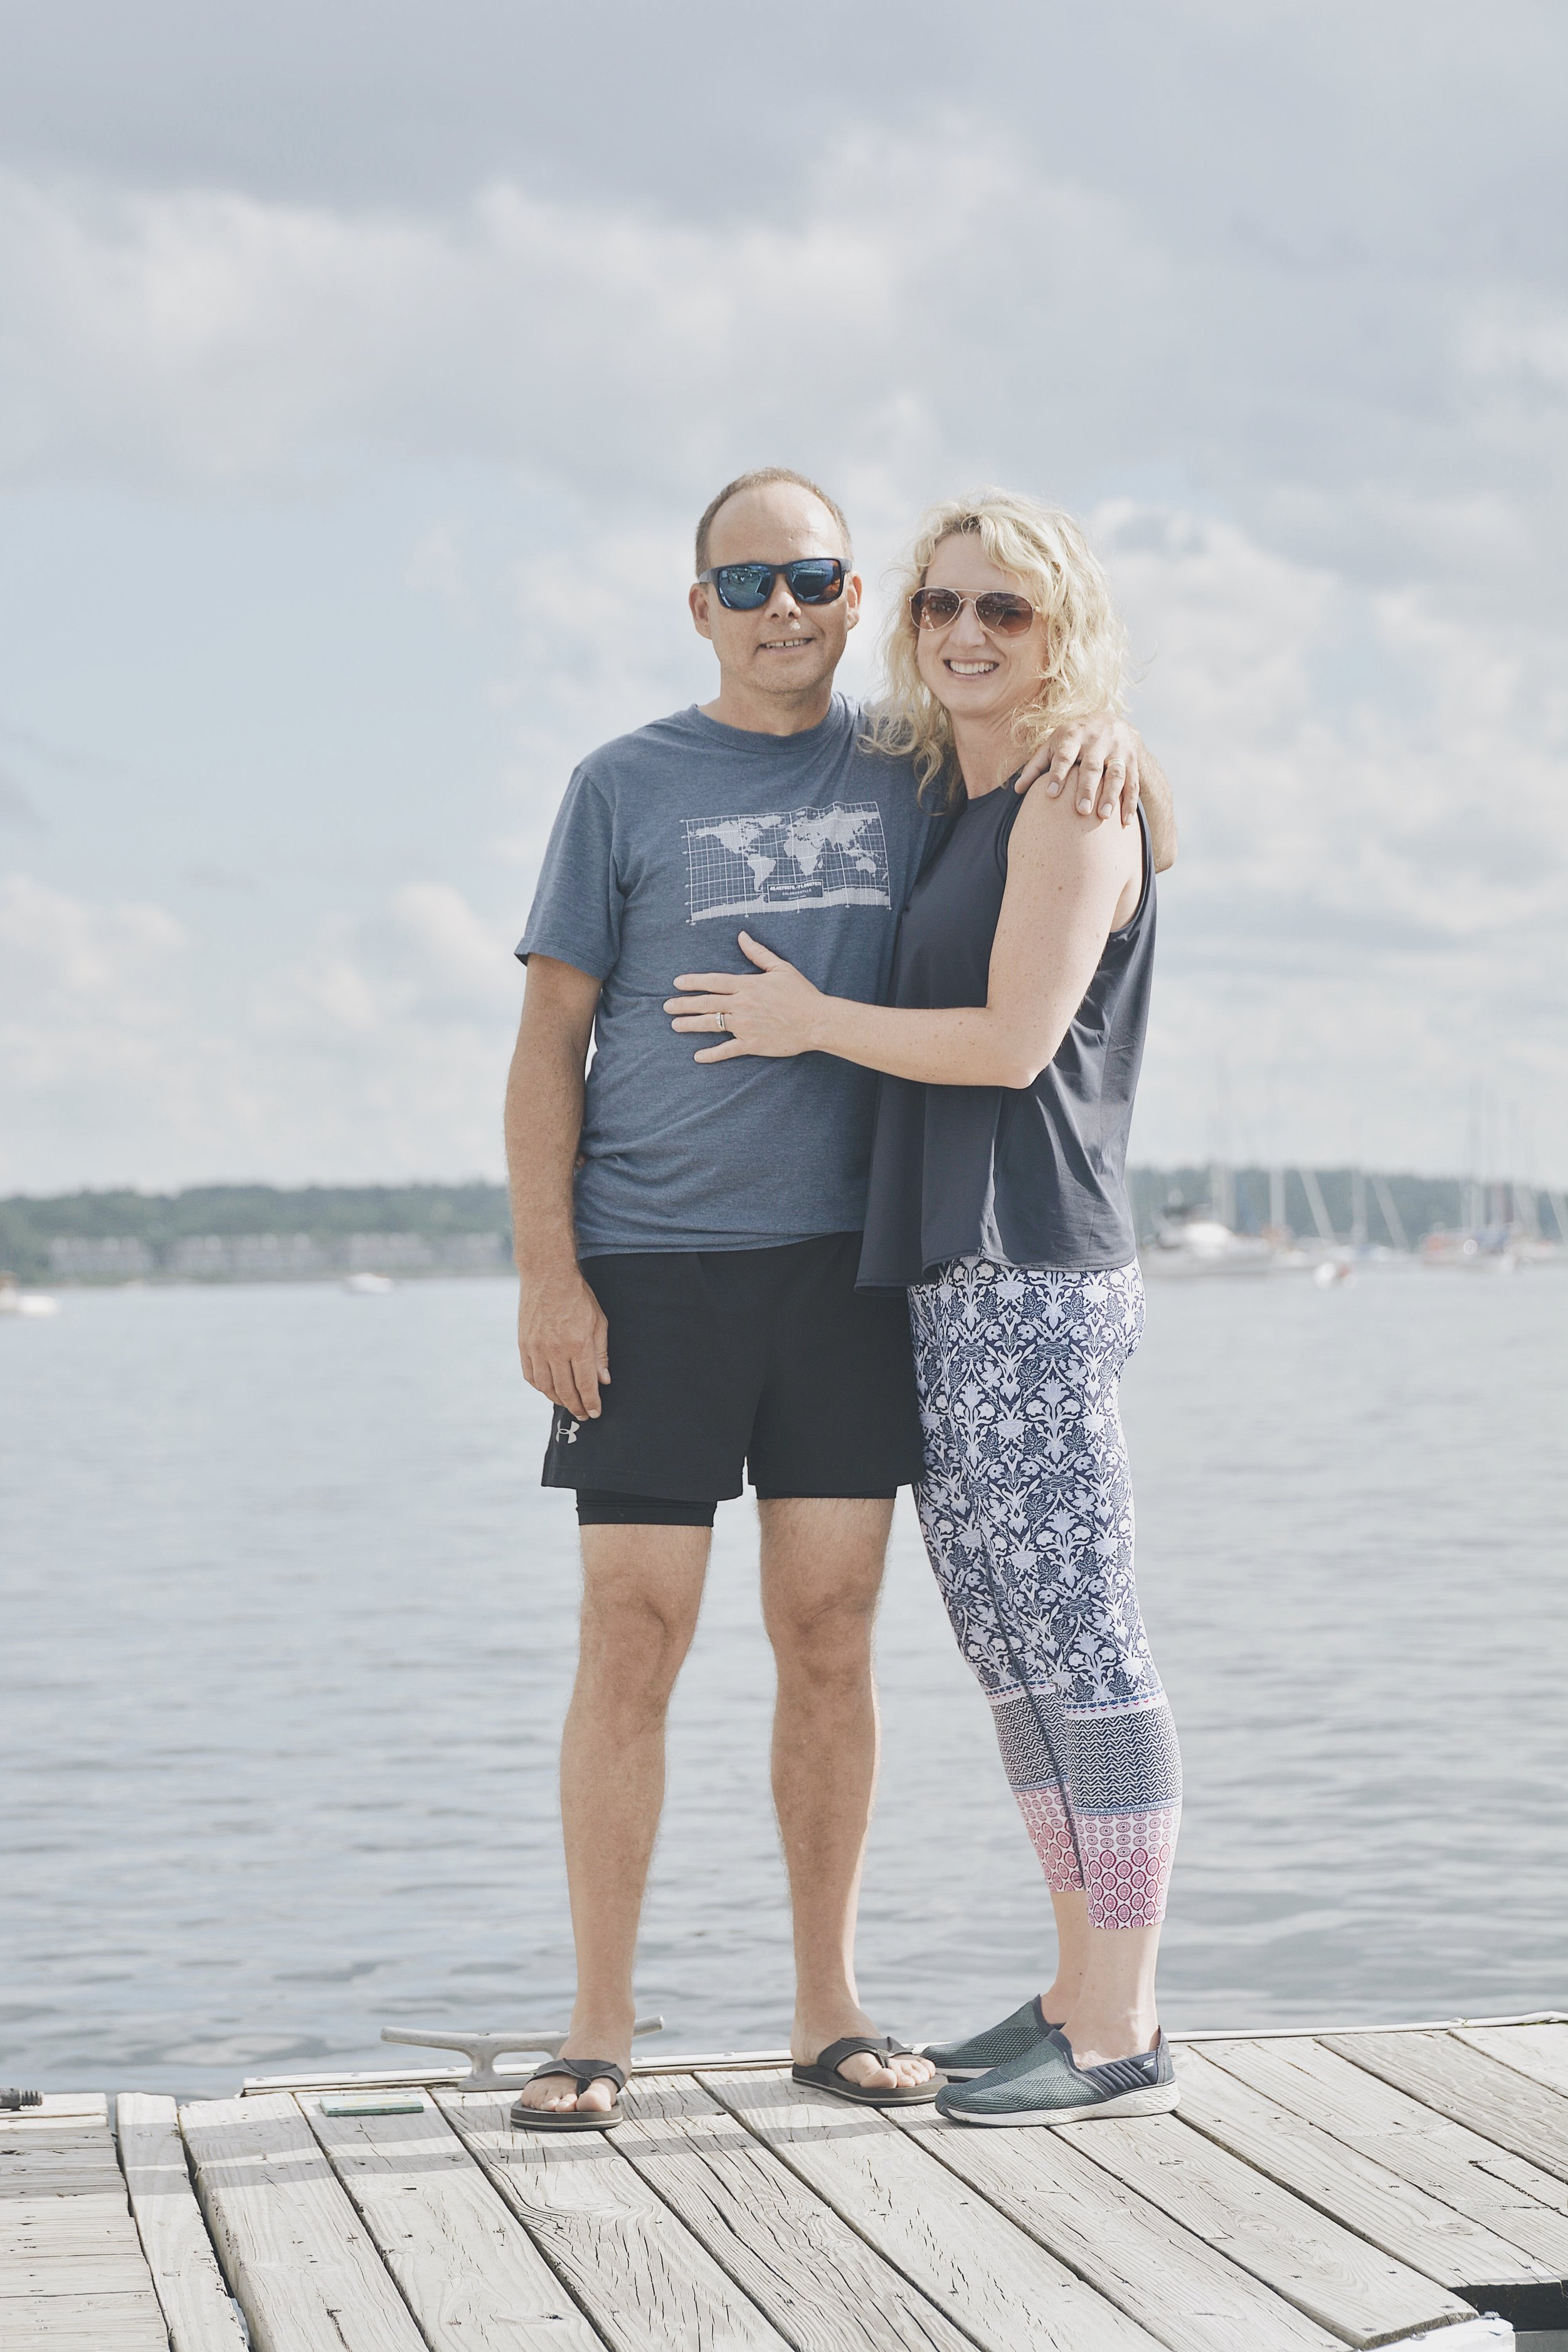 Isabelle brought her husband along and asked Patrick to infuse the love of yoga in him like he did with her years prior. Hopefully it worked!